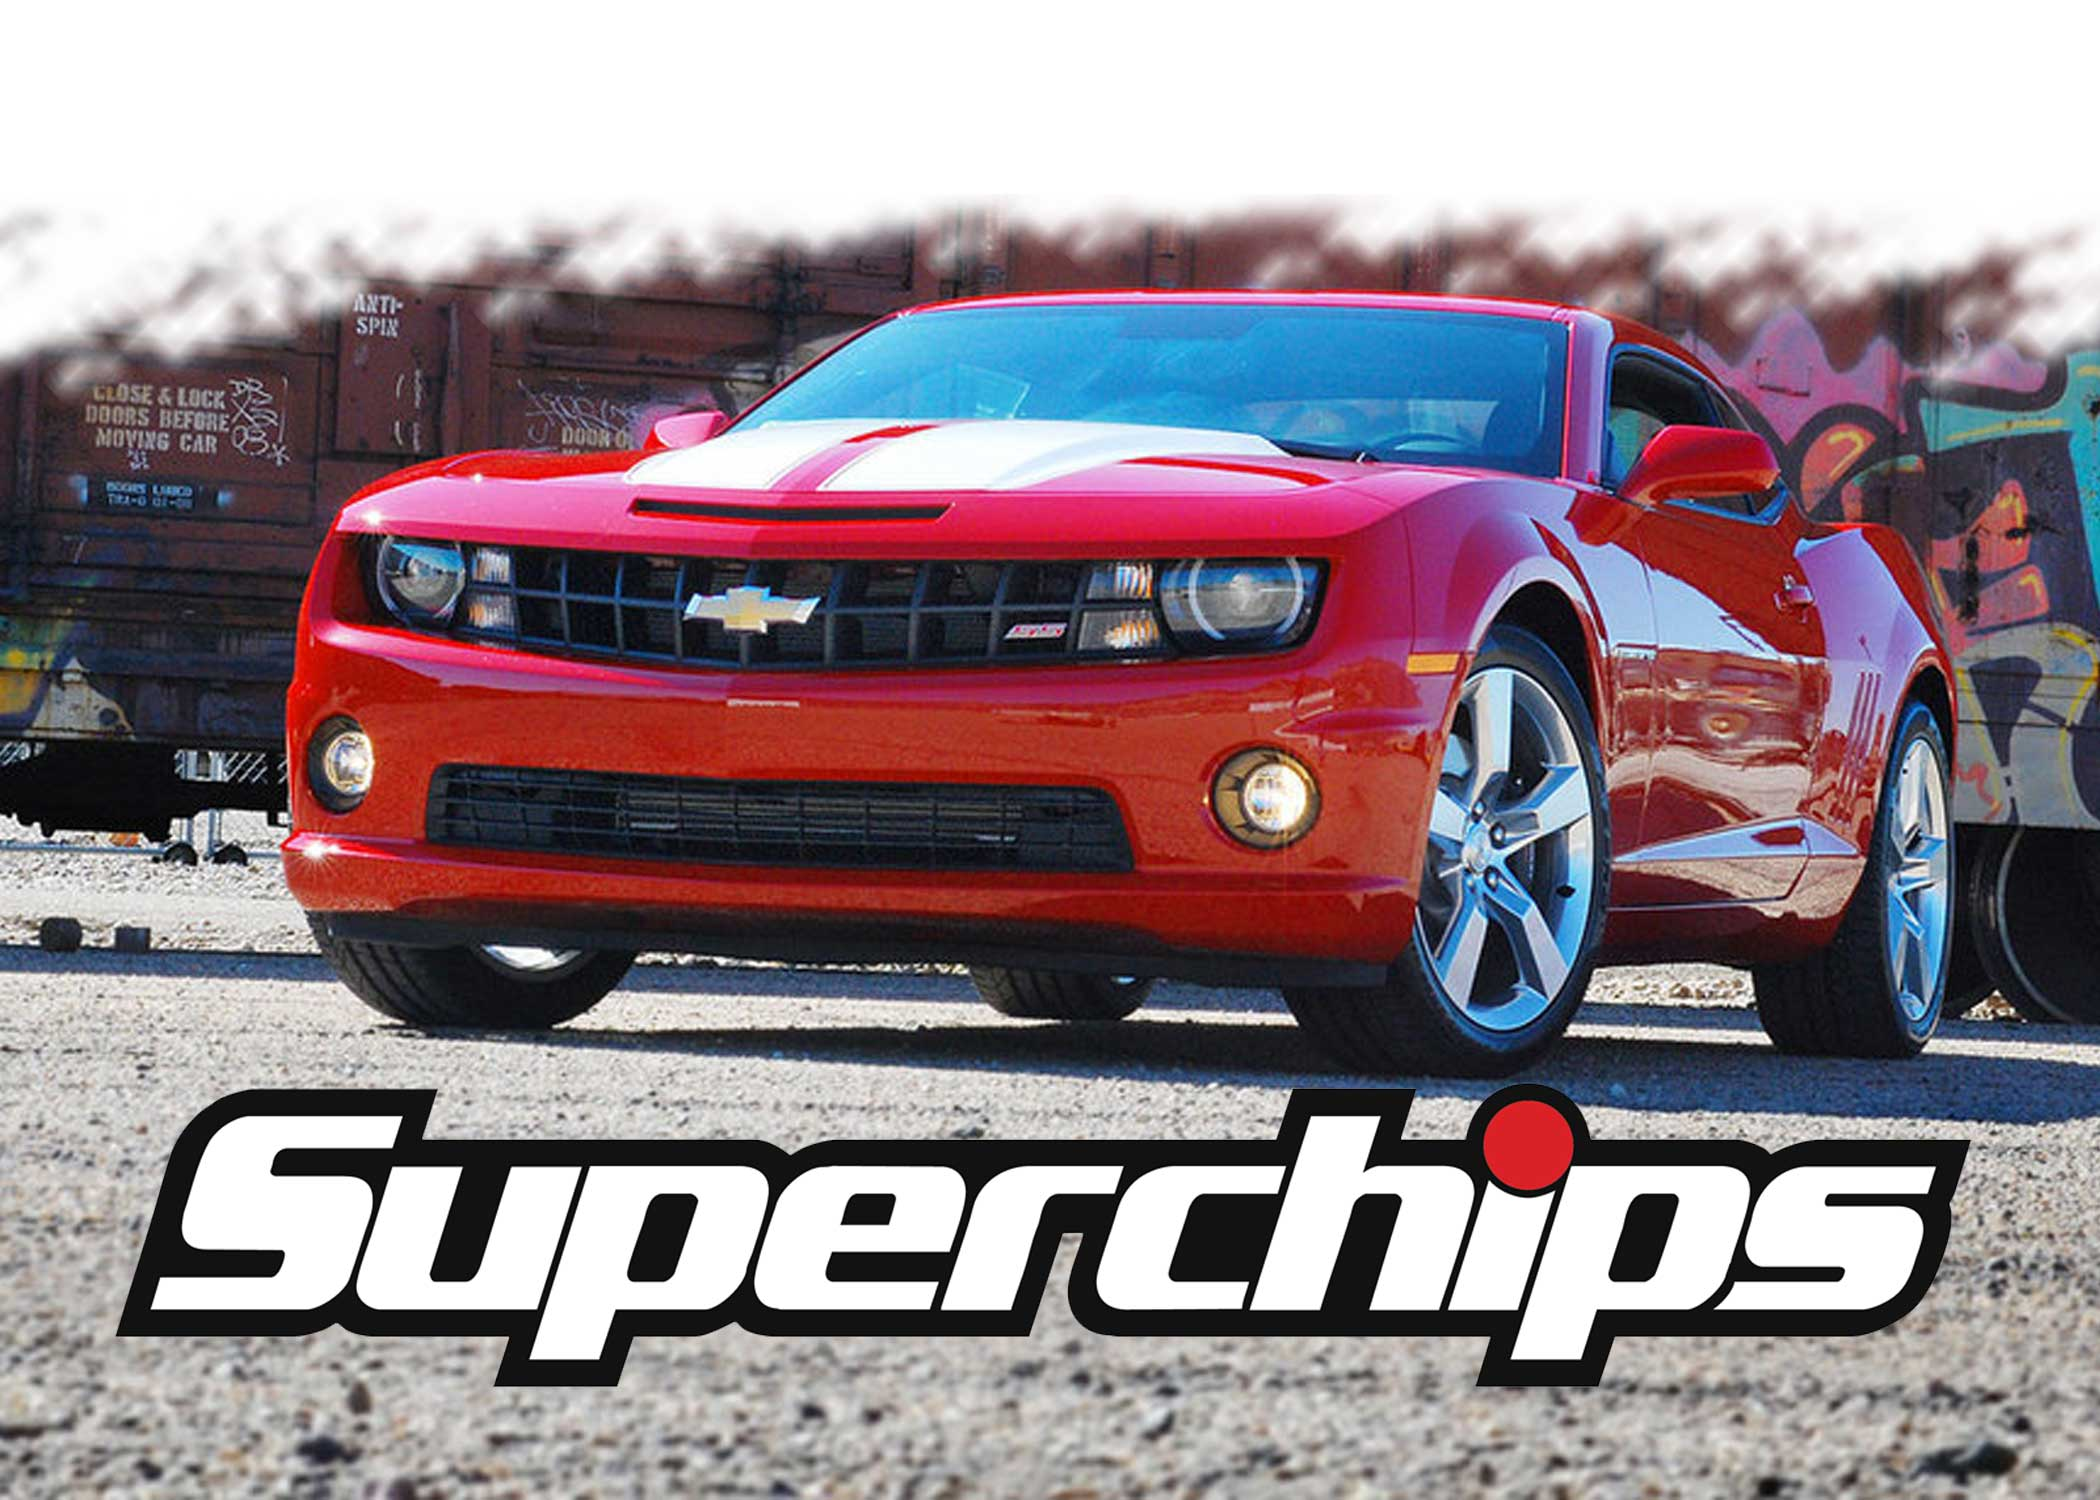 Superchips Auto